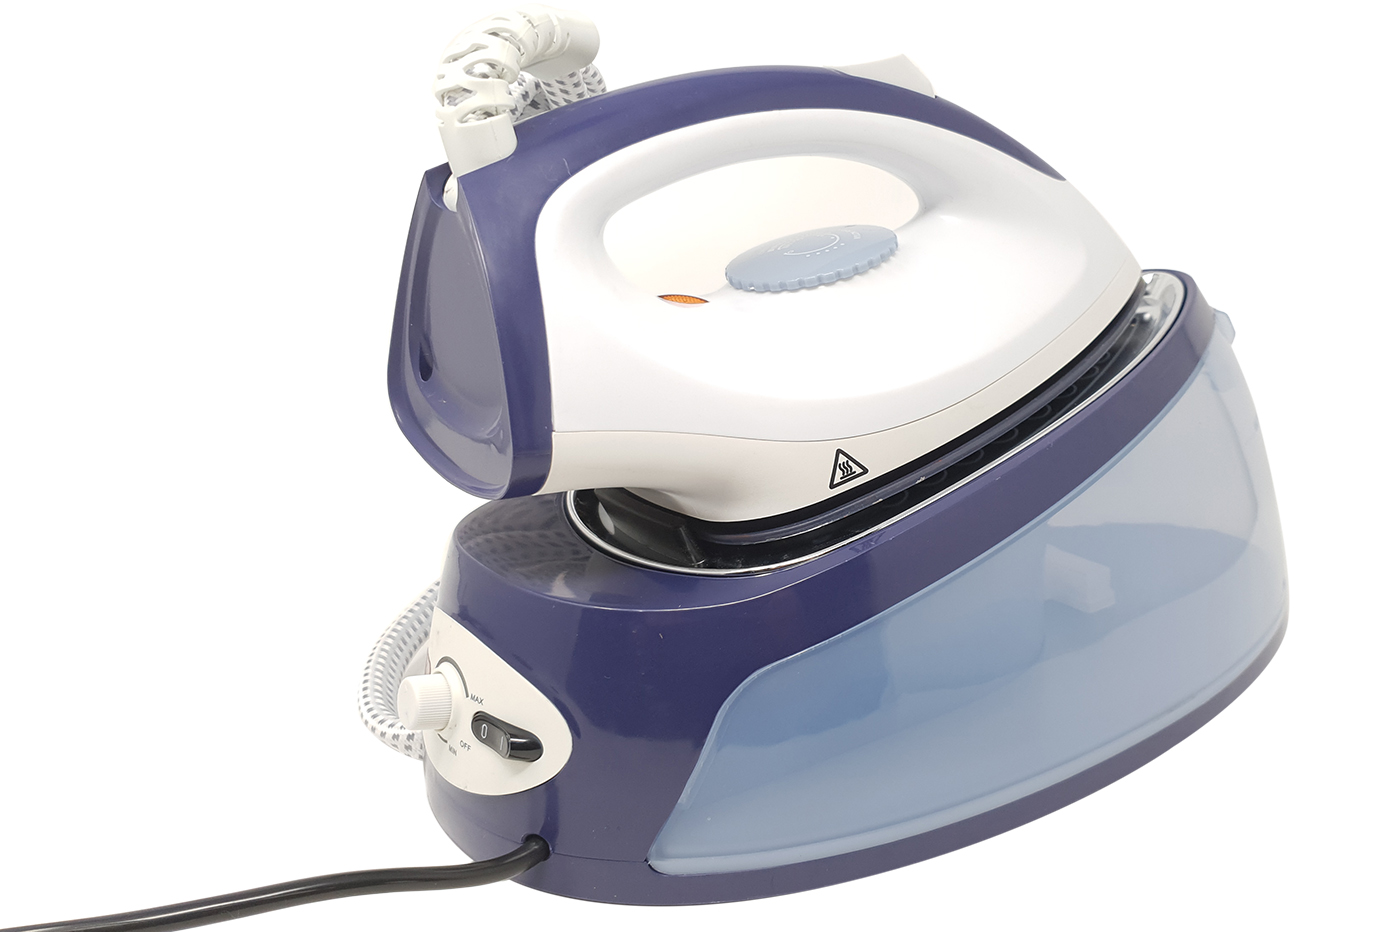 Ferro da stiro con caldaia cotinua Jordan blue steam 2400w